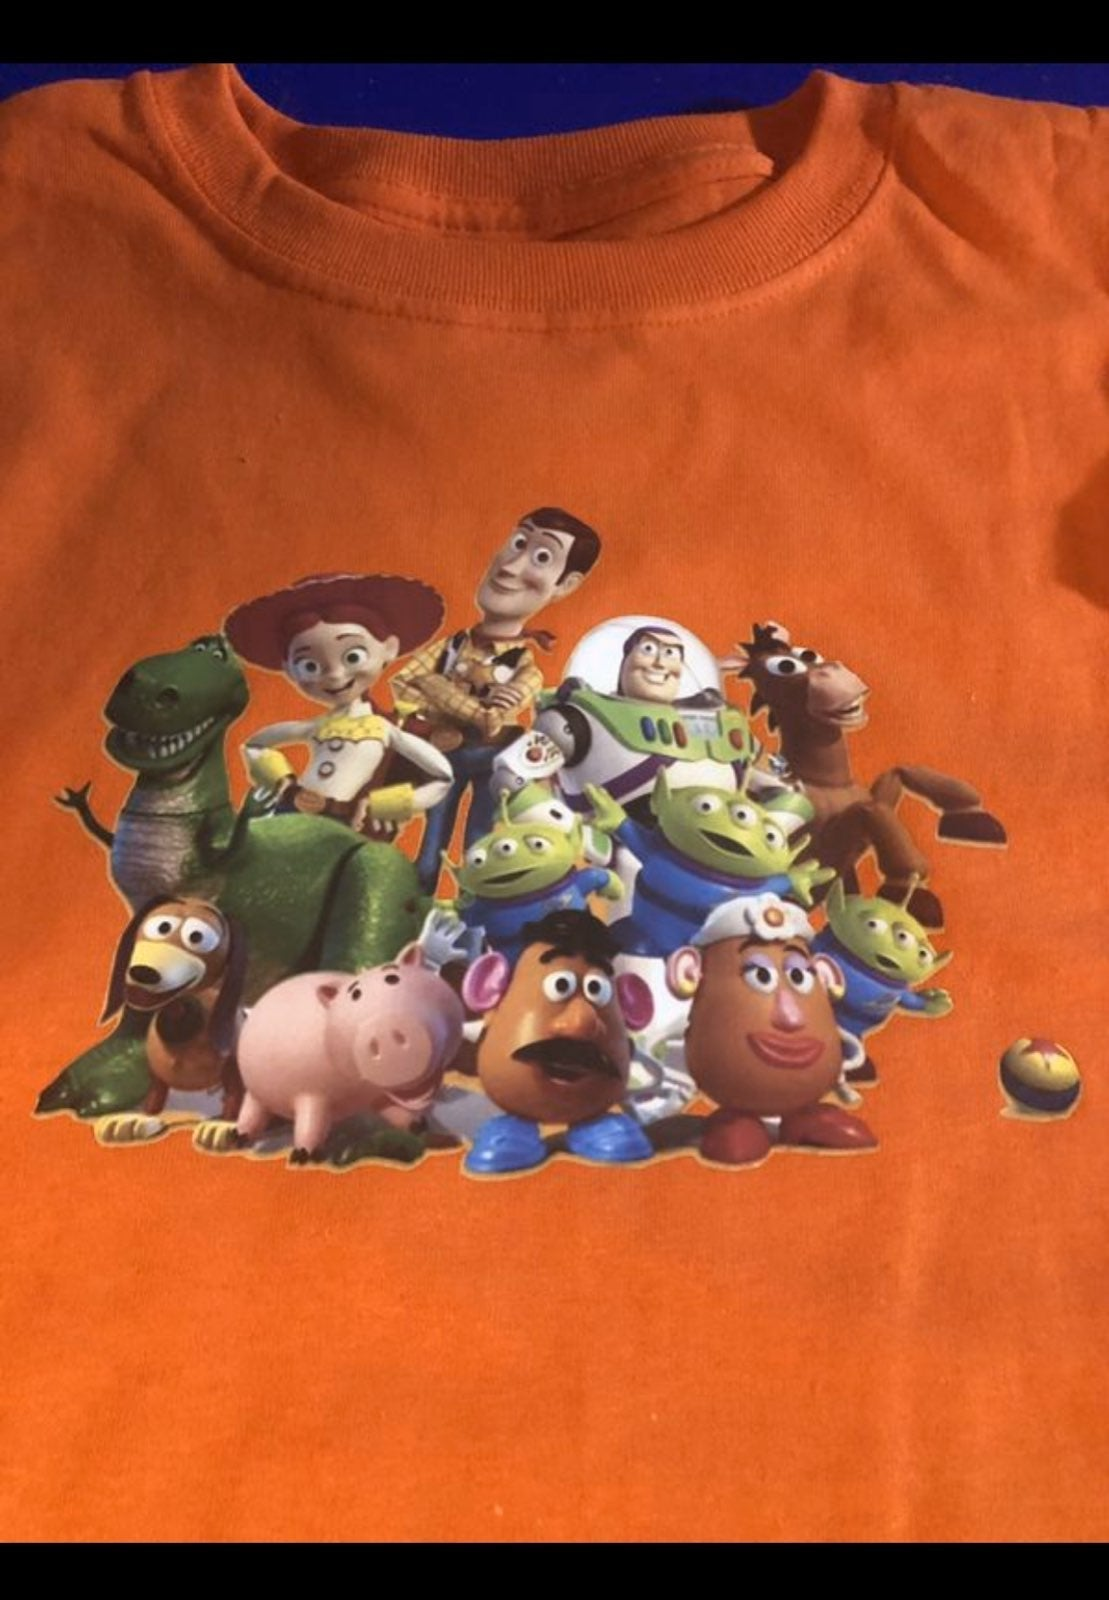 Toy story 4 shirts